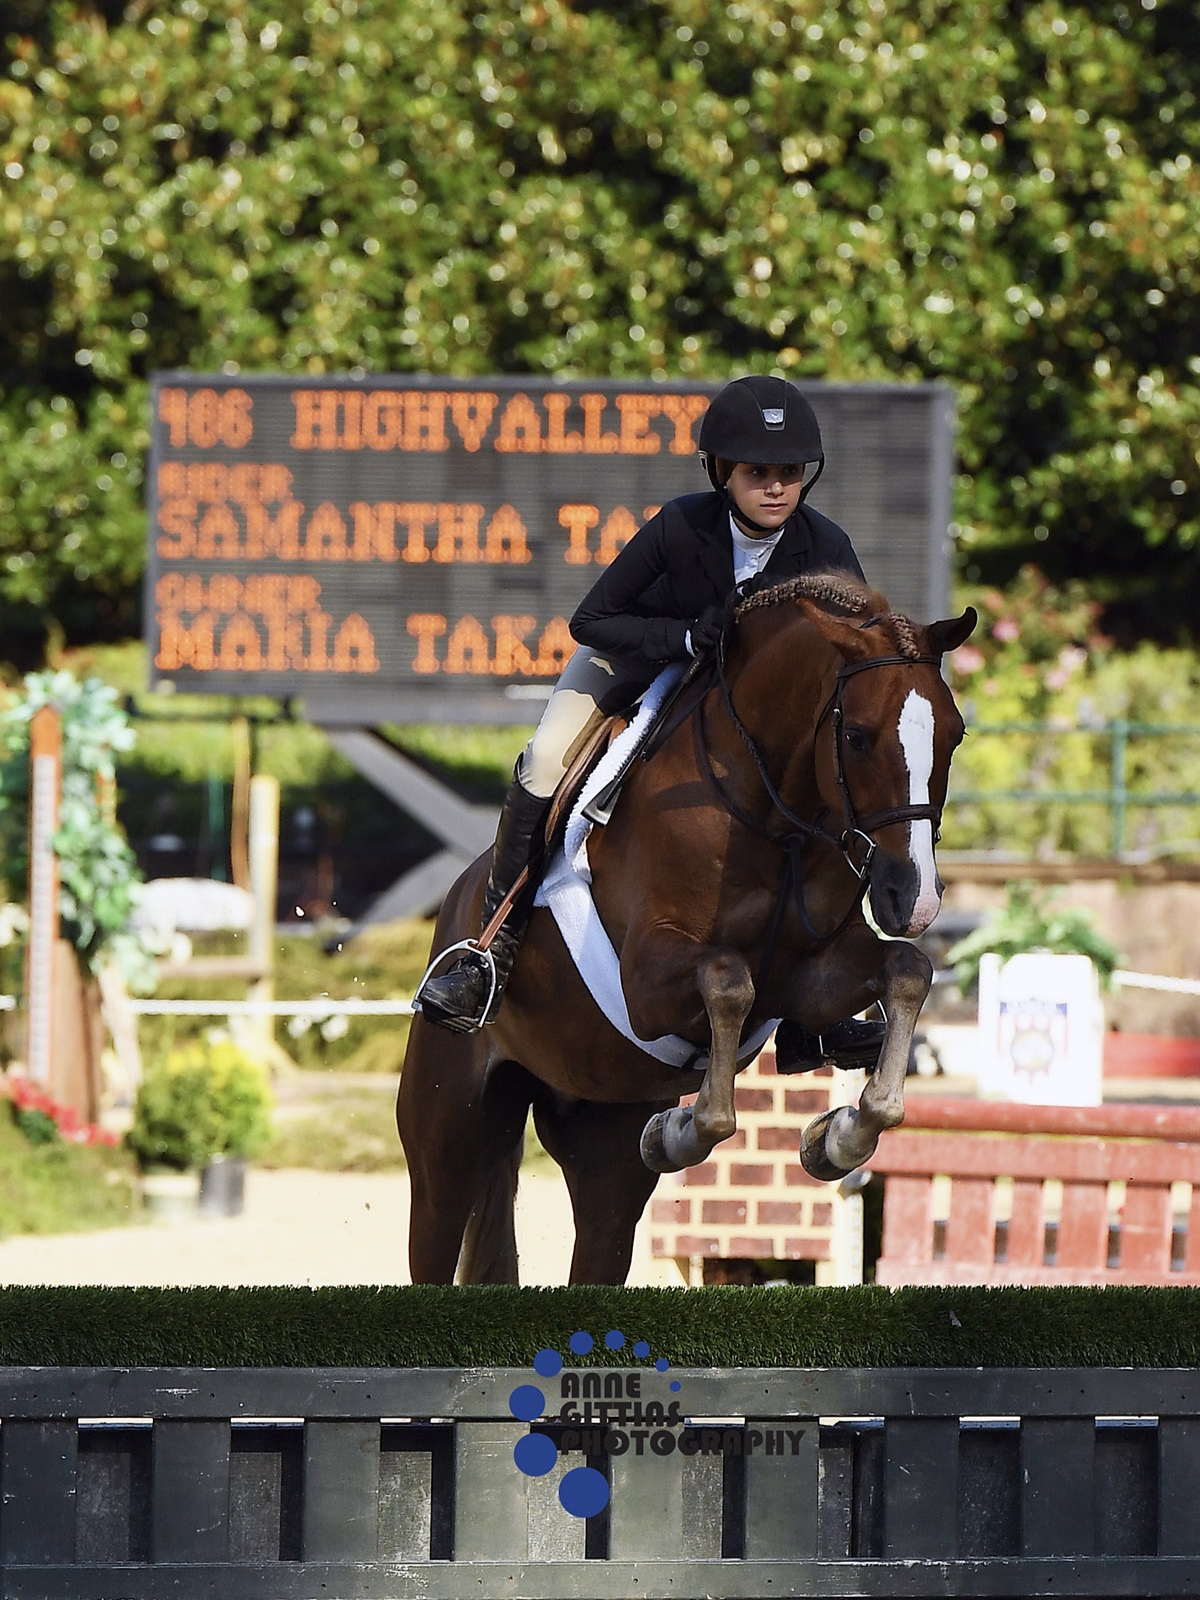 Highvalley and Samantha Takacs kicked off the morning with victory in the Children's Hunter Pony. Highvalley was imported by Stal De Eyckenhoeve. Photo by Anne Gittins Photography